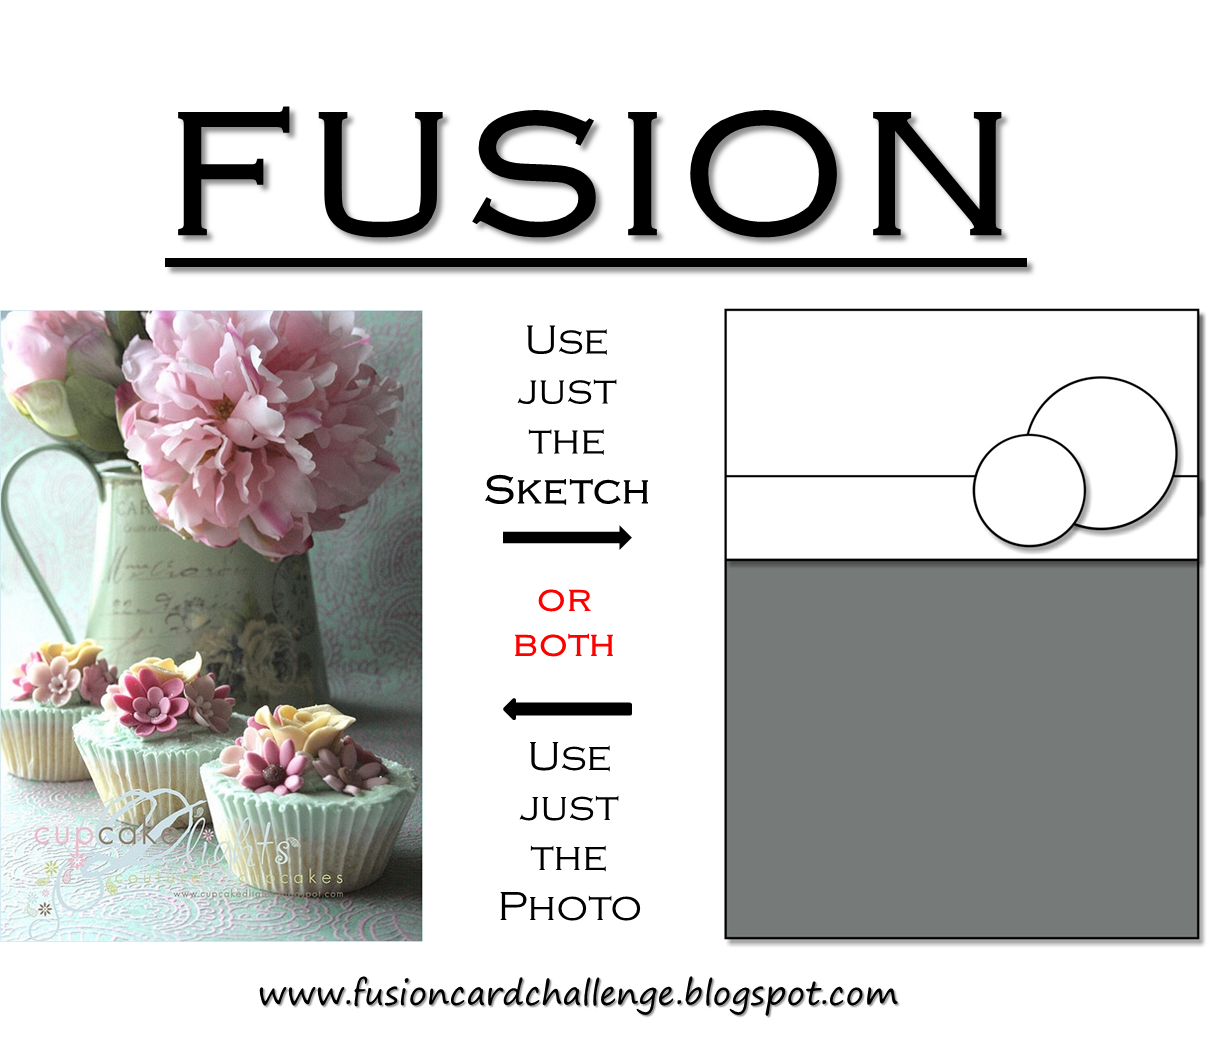 http://fusioncardchallenge.blogspot.com/2014/07/july-17th-french-cupcakes.html